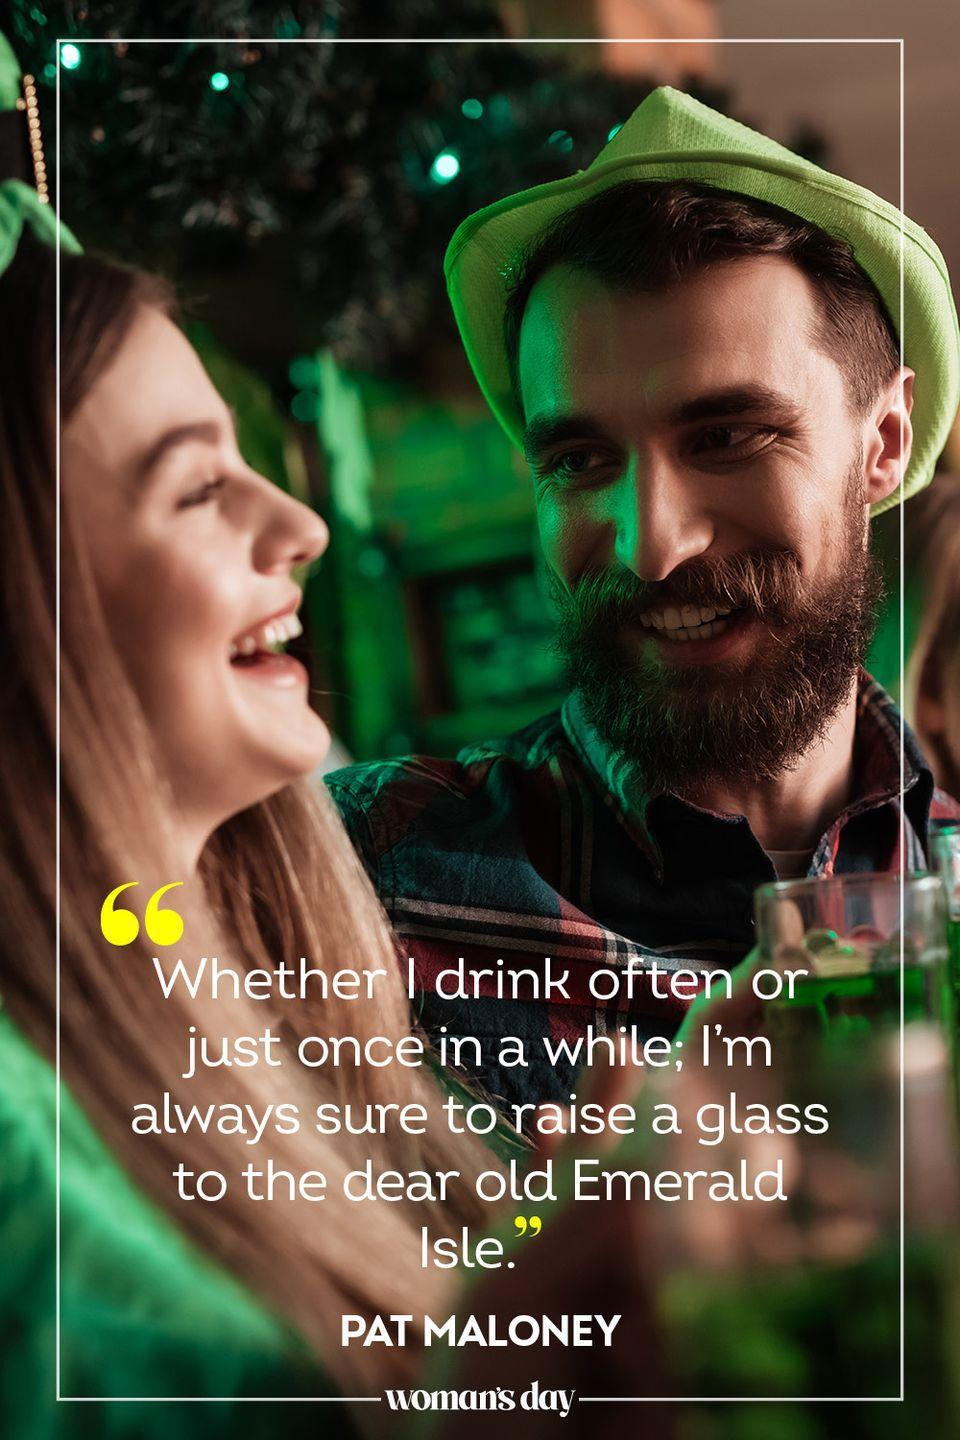 """<p>""""Whether I drink often or just once in a while; I'm always sure to raise a glass to the dear old Emerald Isle."""" — Pat Maloney</p><p><strong>________________________________________________________</strong></p><p><em>Want to make your holidays shine? You're in luck! <a href=""""https://subscribe.hearstmags.com/subscribe/womansday/253396?source=wdy_edit_article"""" rel=""""nofollow noopener"""" target=""""_blank"""" data-ylk=""""slk:Subscribe to Woman's Day"""" class=""""link rapid-noclick-resp"""">Subscribe to Woman's Day</a> today and get <strong>73% off your first 12 issues</strong>. And while you're at it, <a href=""""https://subscribe.hearstmags.com/circulation/shared/email/newsletters/signup/wdy-su01.html"""" rel=""""nofollow noopener"""" target=""""_blank"""" data-ylk=""""slk:sign up for our FREE newsletter"""" class=""""link rapid-noclick-resp"""">sign up for our FREE newsletter</a> for even more of the Woman's Day content you want.</em></p>"""